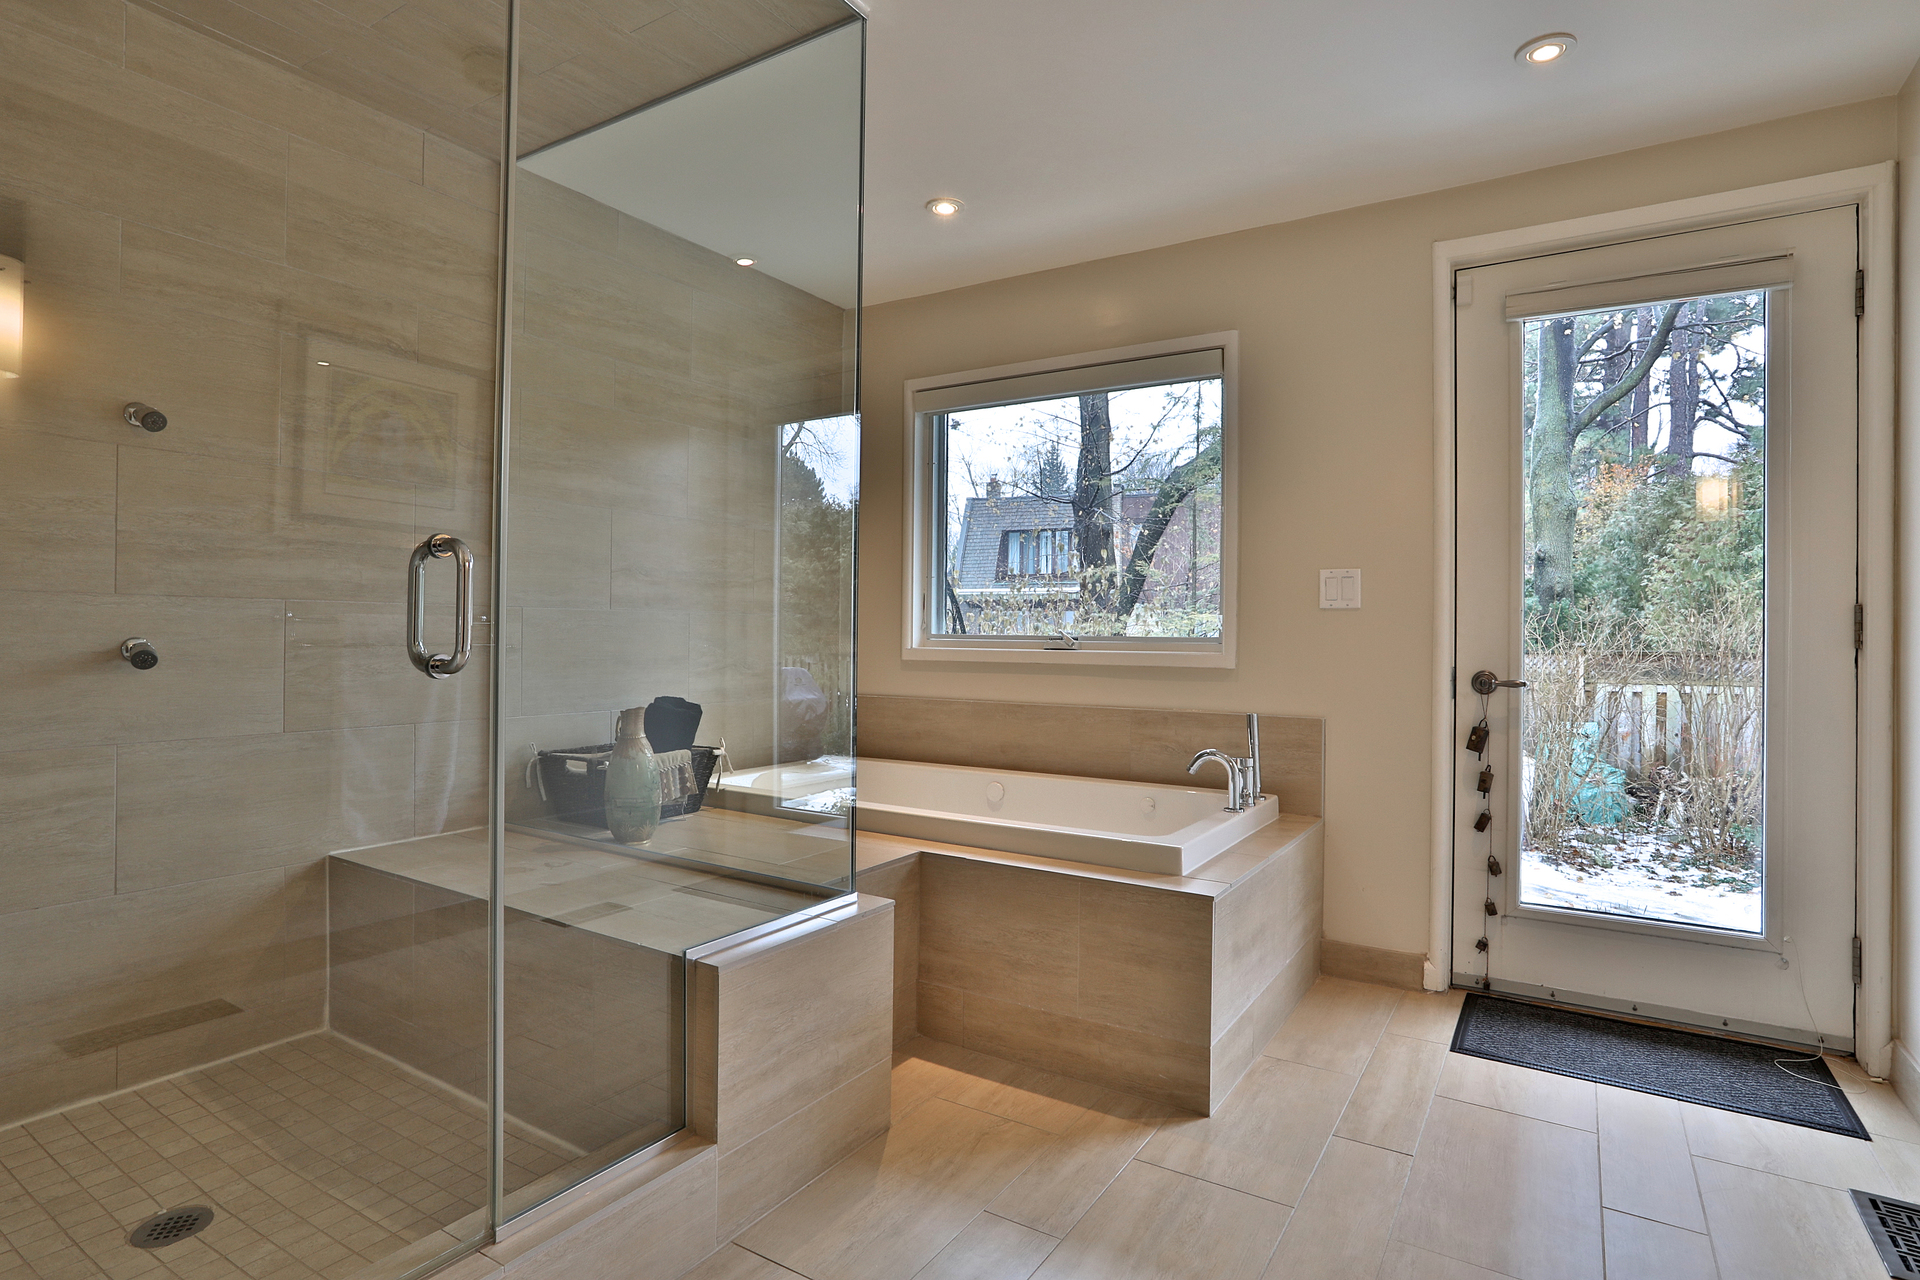 4 Piece Bathroom at 8 Parmbelle Crescent, Parkwoods-Donalda, Toronto